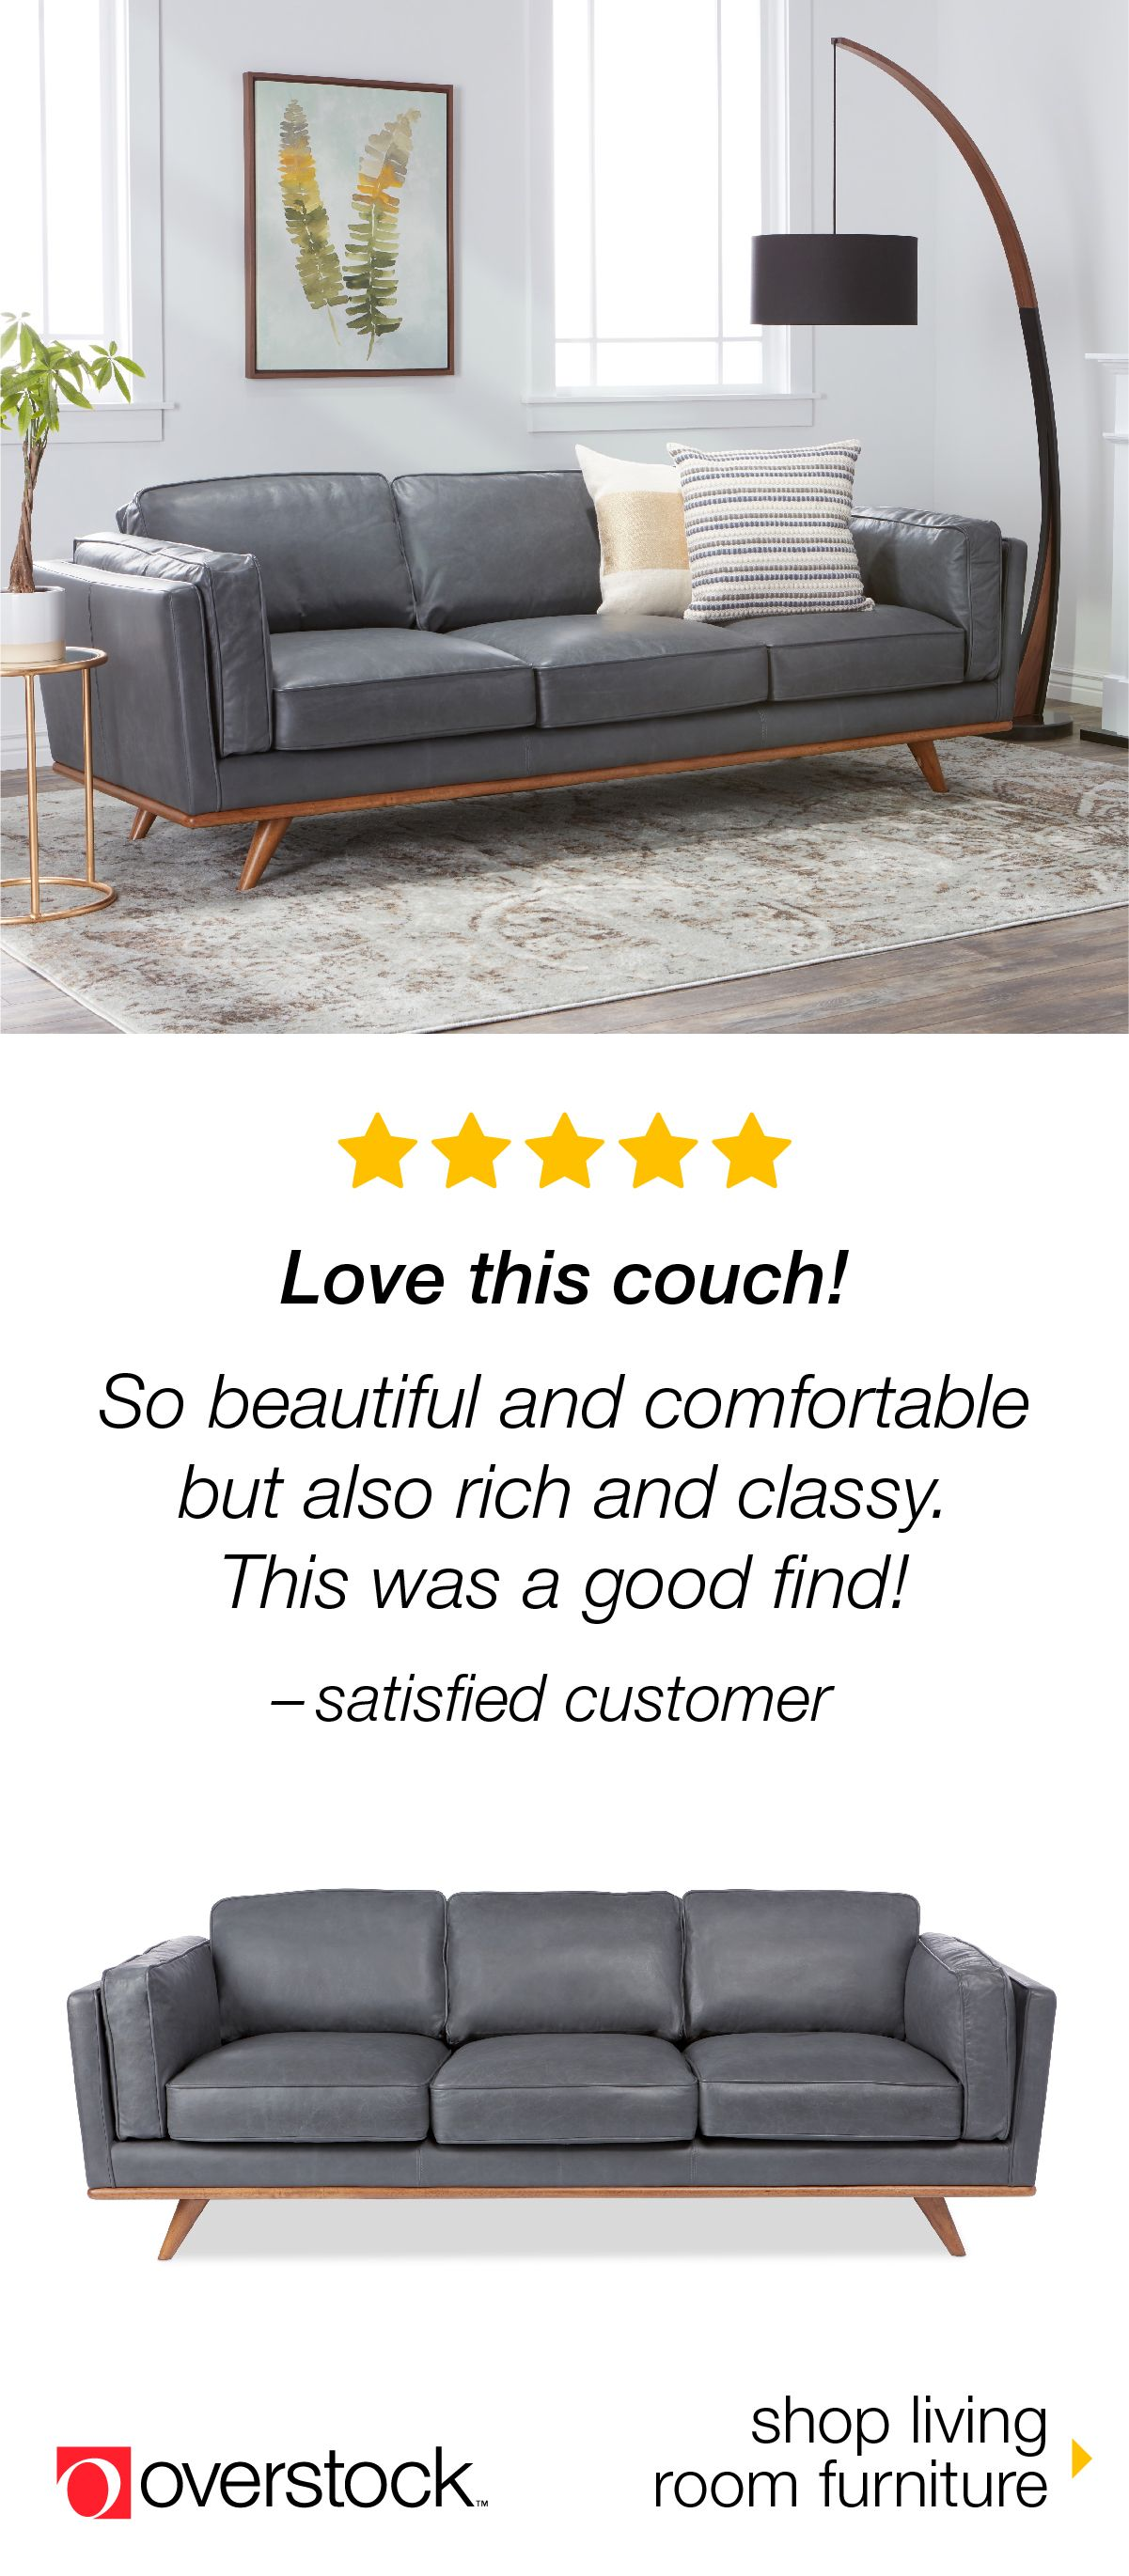 Overstock Sofa Sofas To Buy Find The Perfect For Your Space At Com Shop Our Selection Of Living Room Furniture By Size Material Color And Style Best Fit